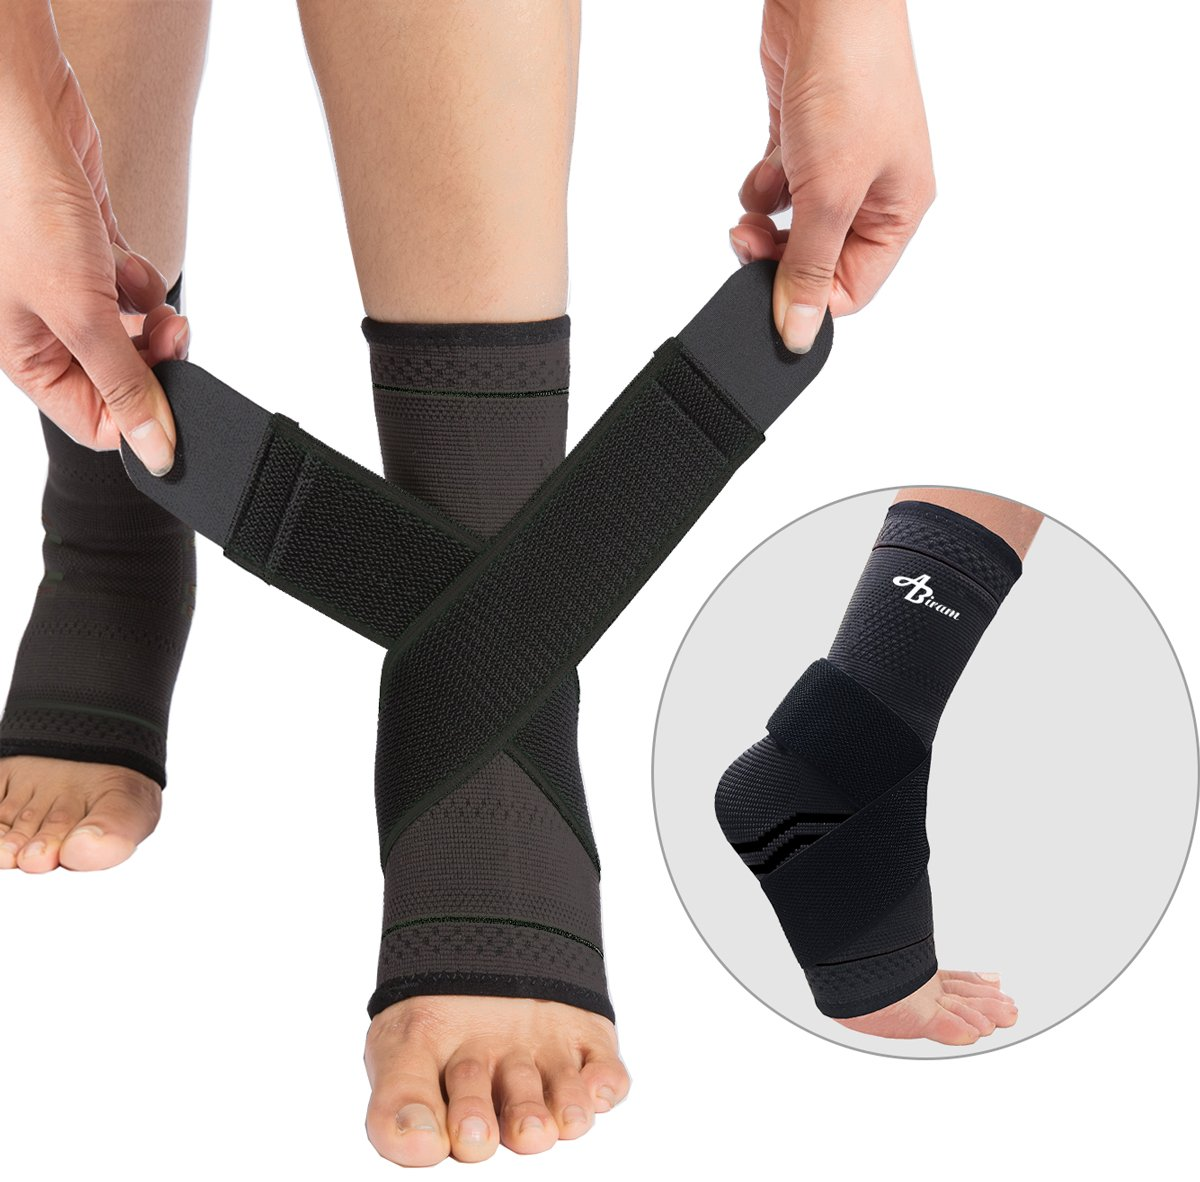 Image result for ankle braces for volleyball